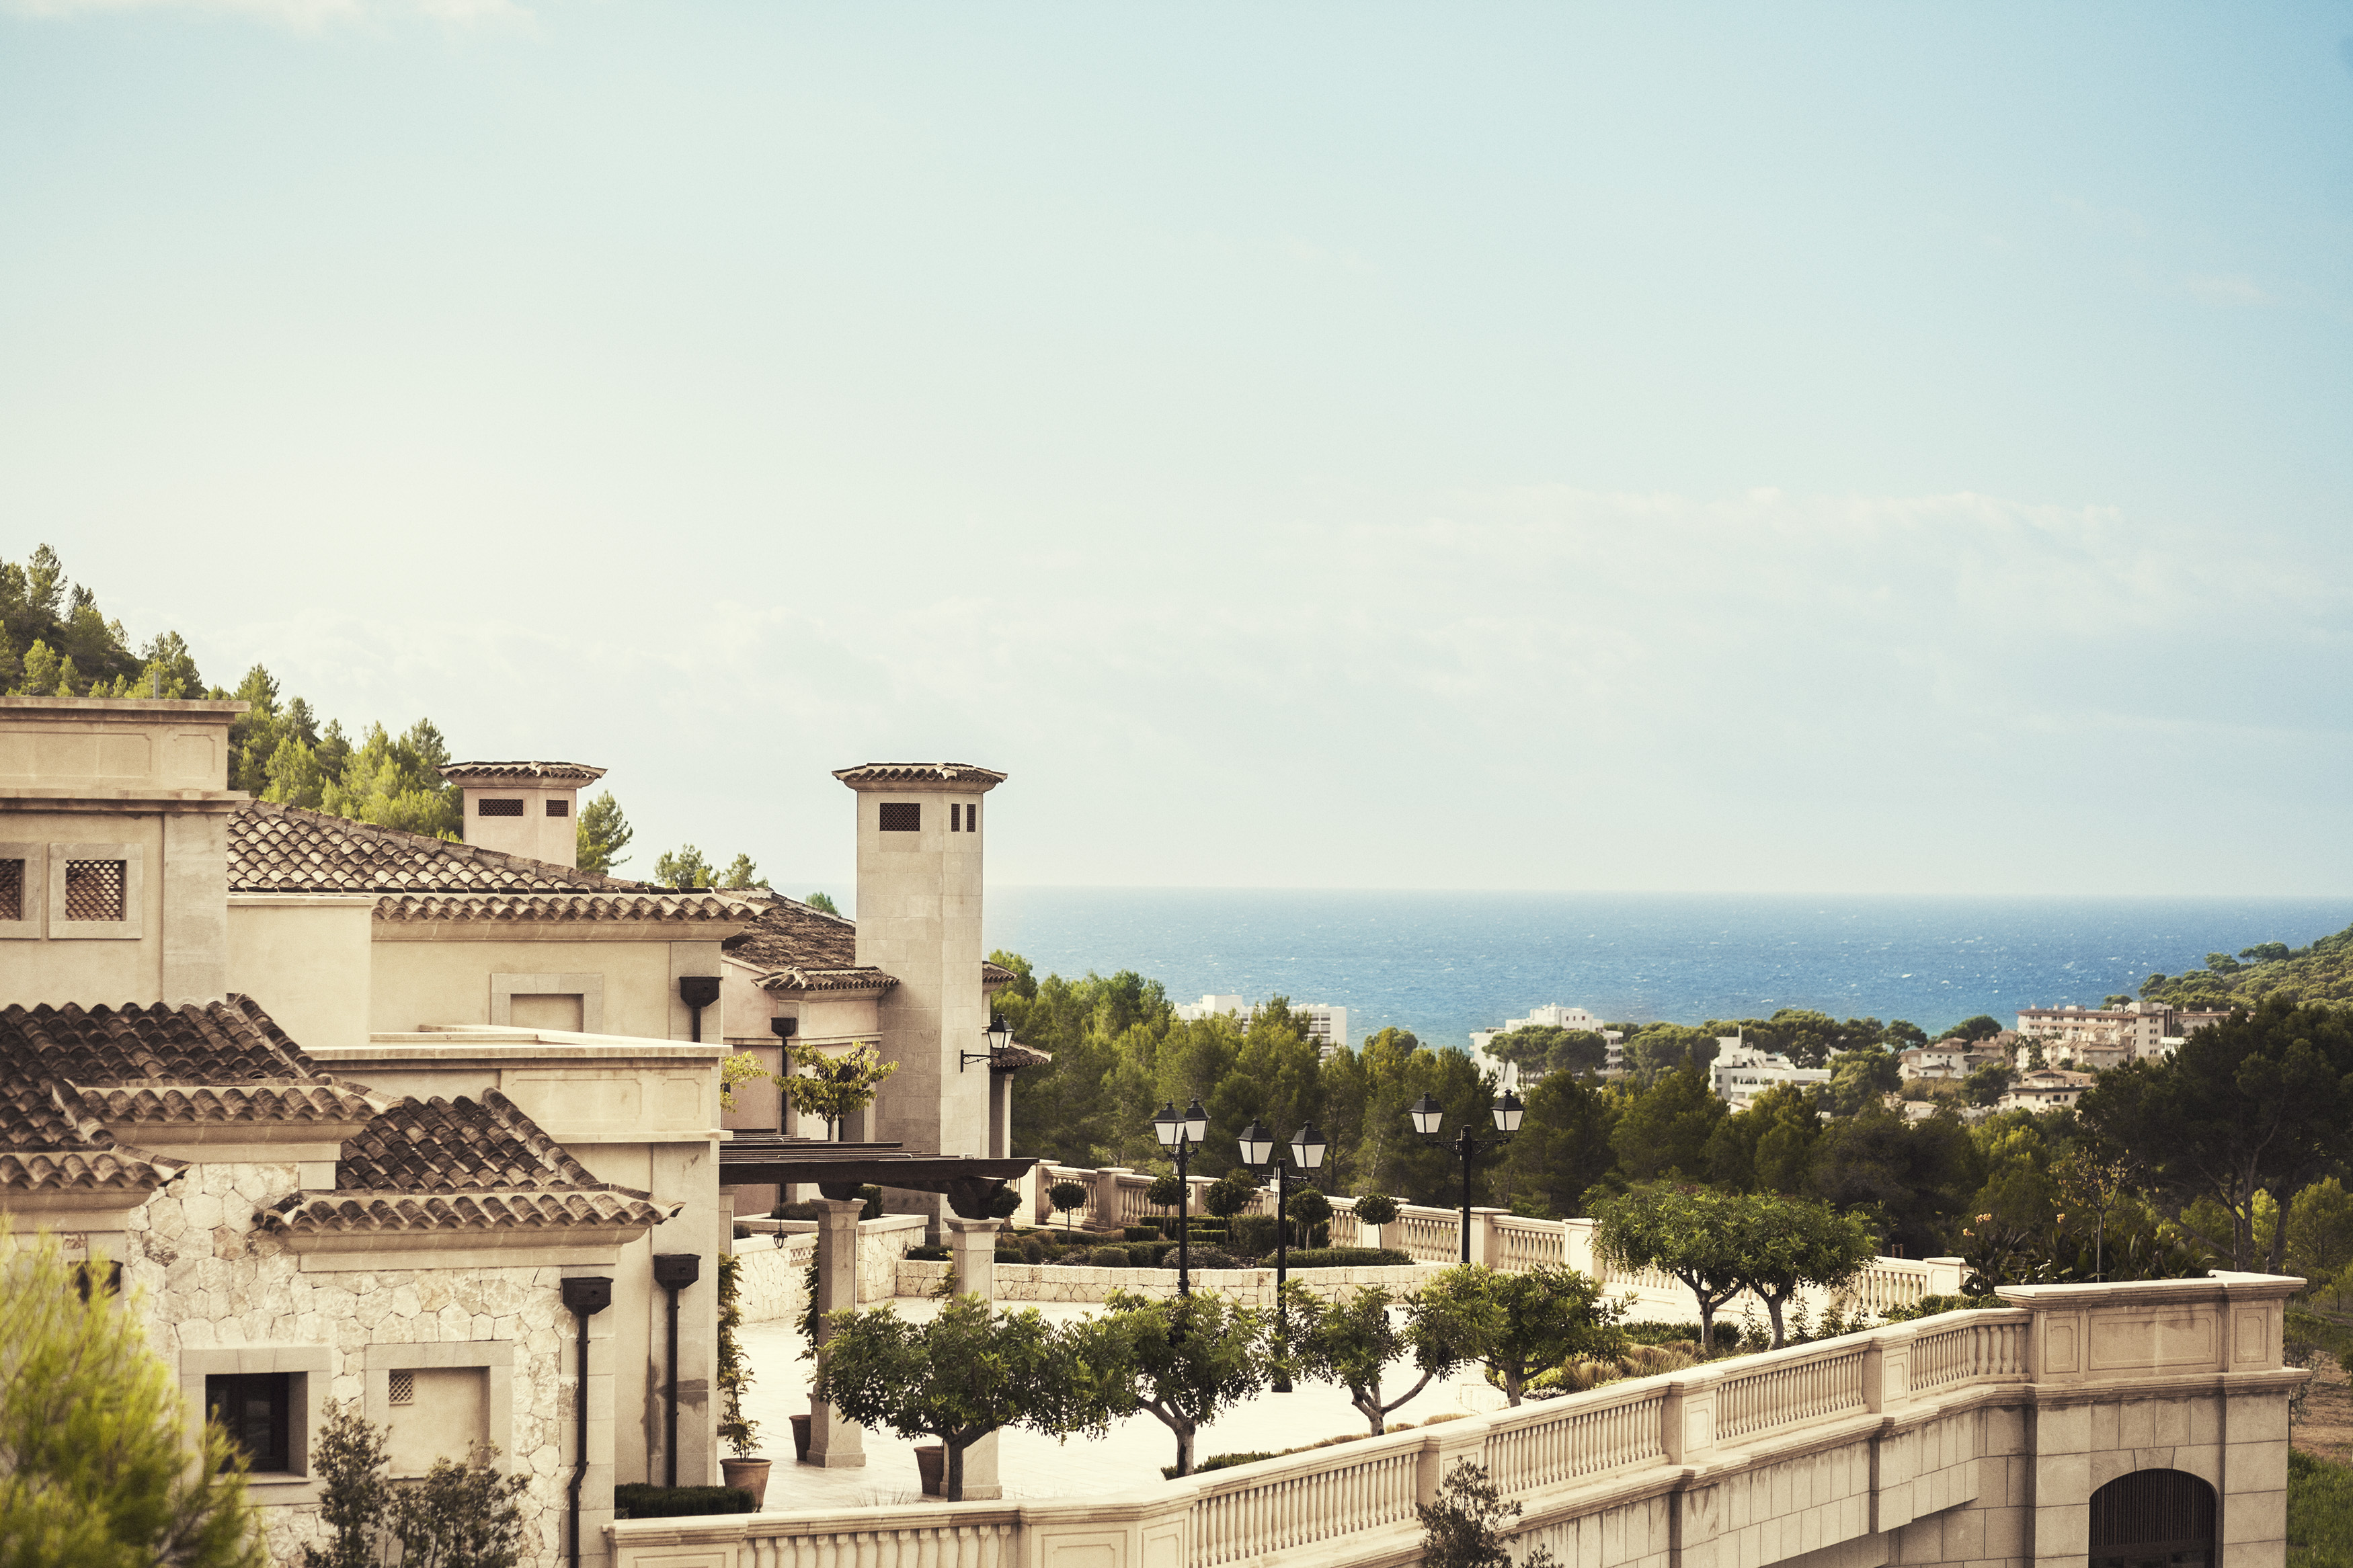 Park Hyatt Mallorca | Photo courtesy of Hyatt